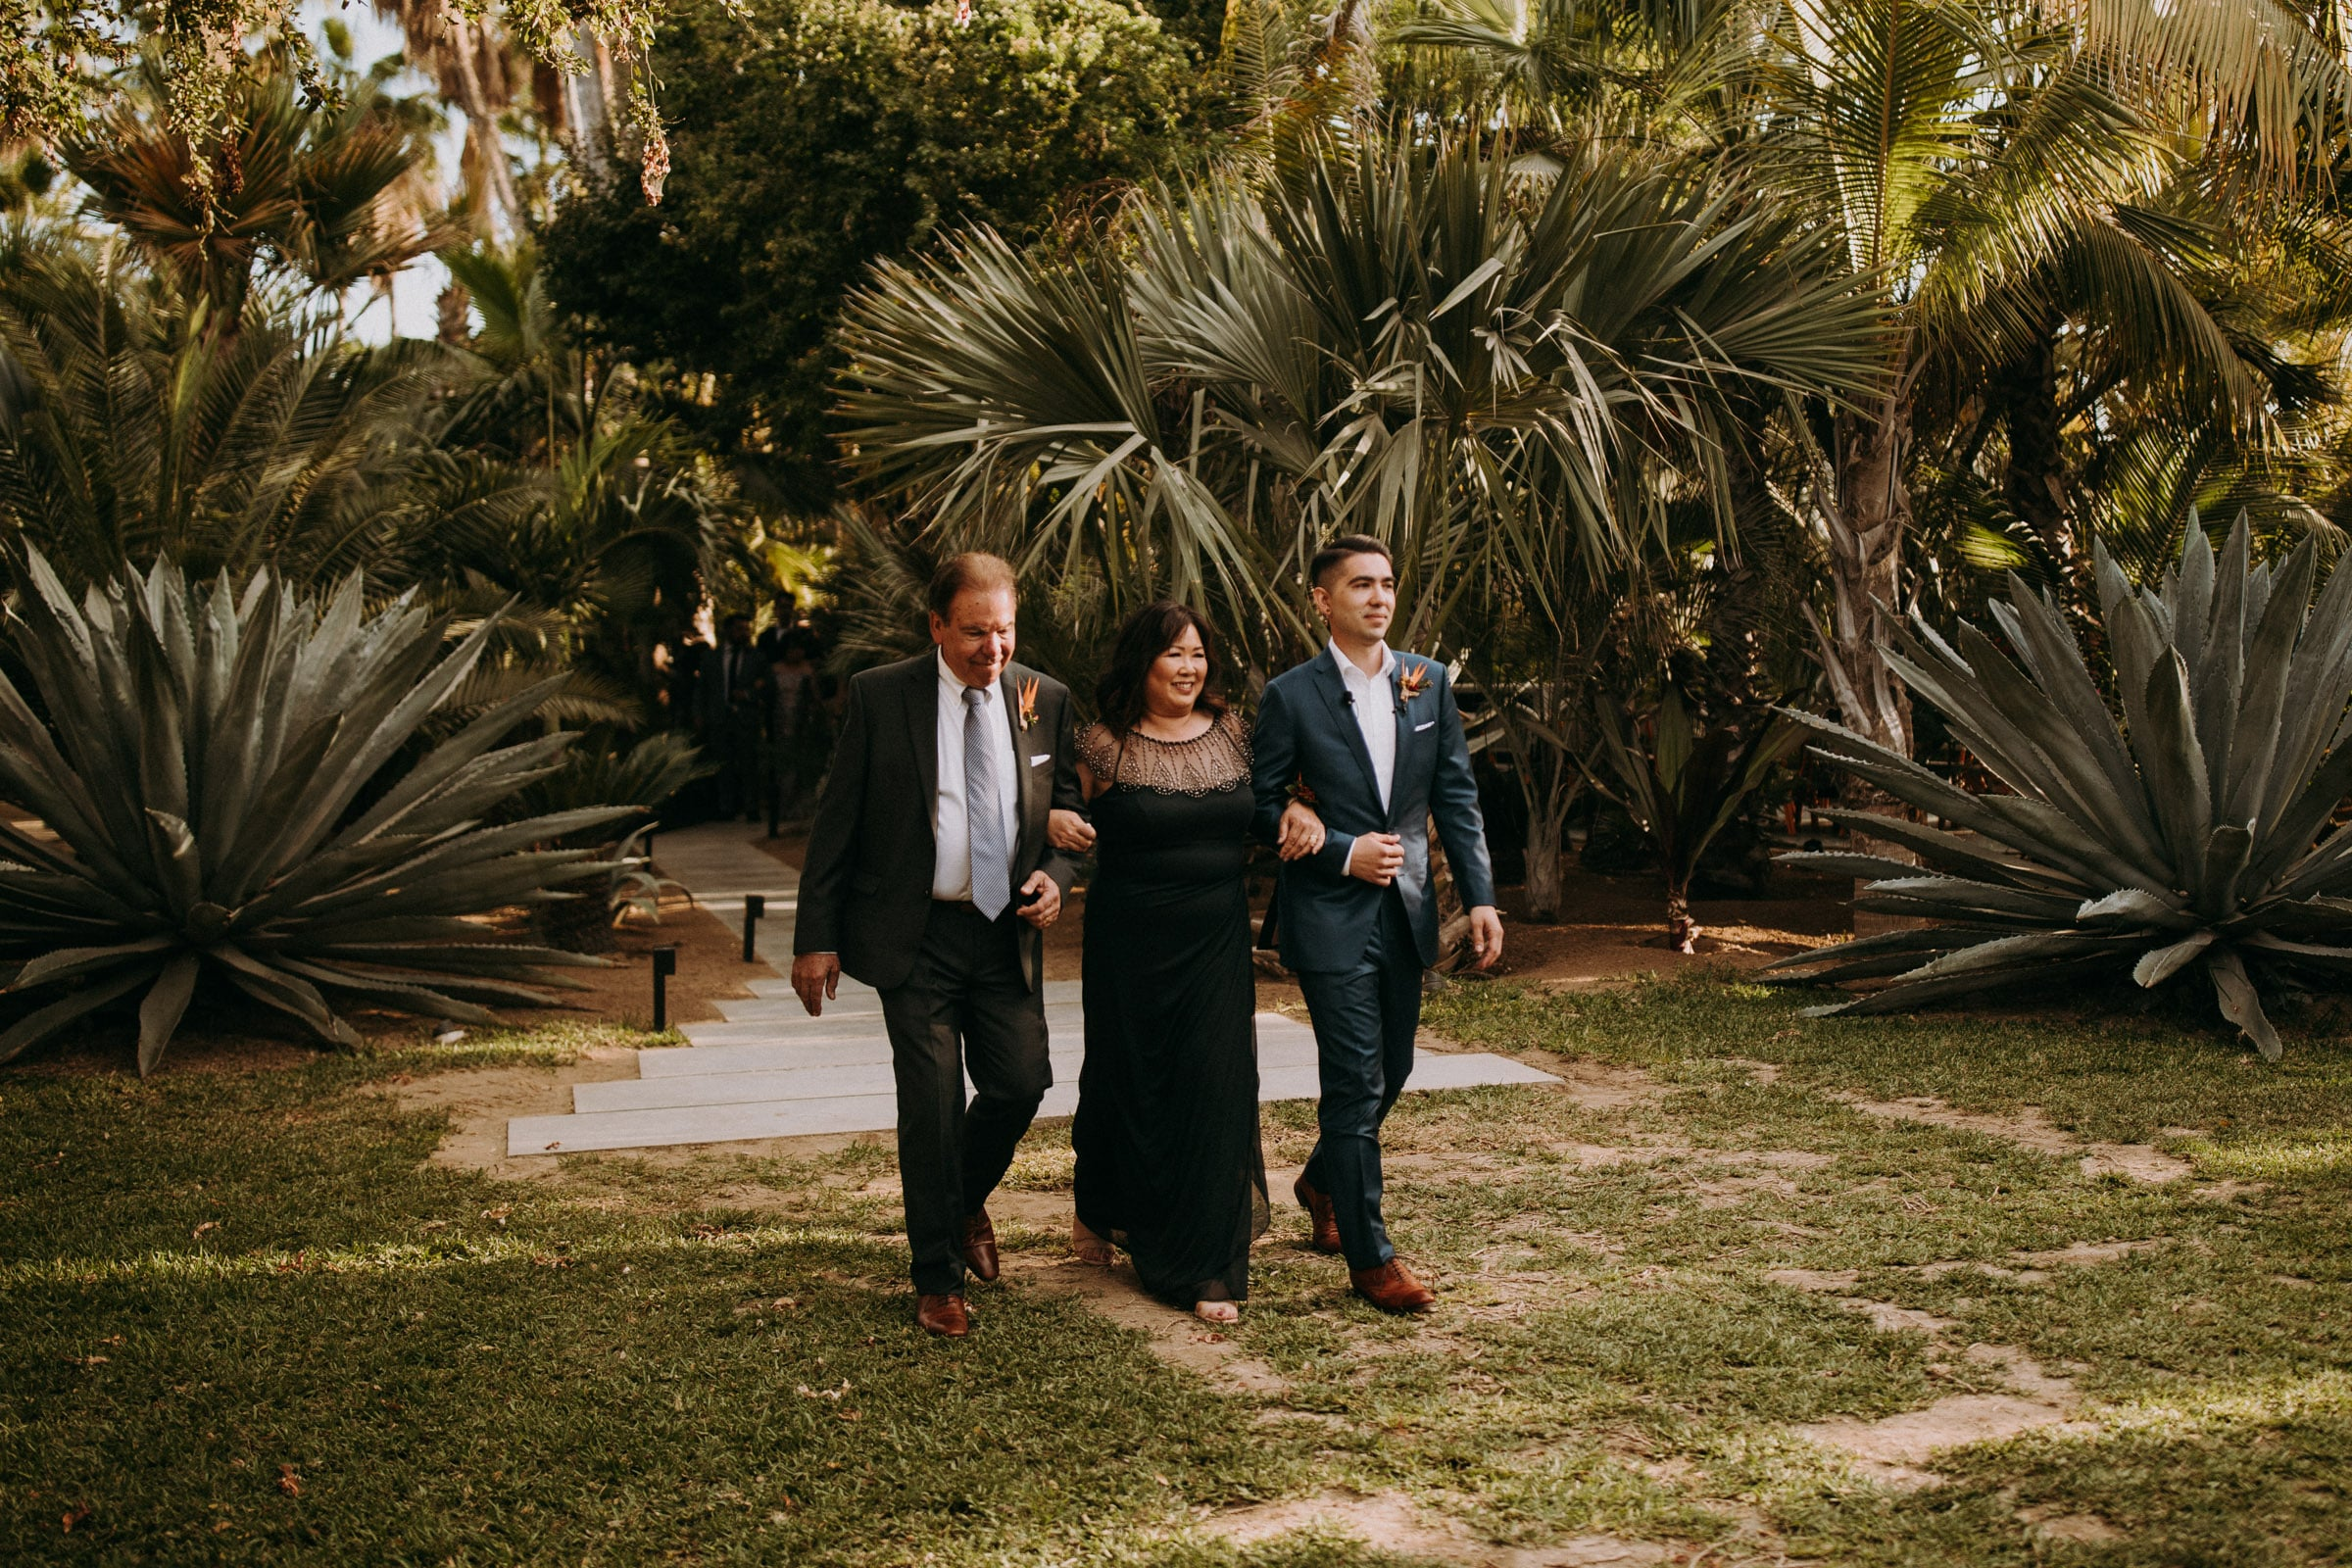 A groom is walking down the aisle with his parents at the San Jose Del Cabo Wedding.